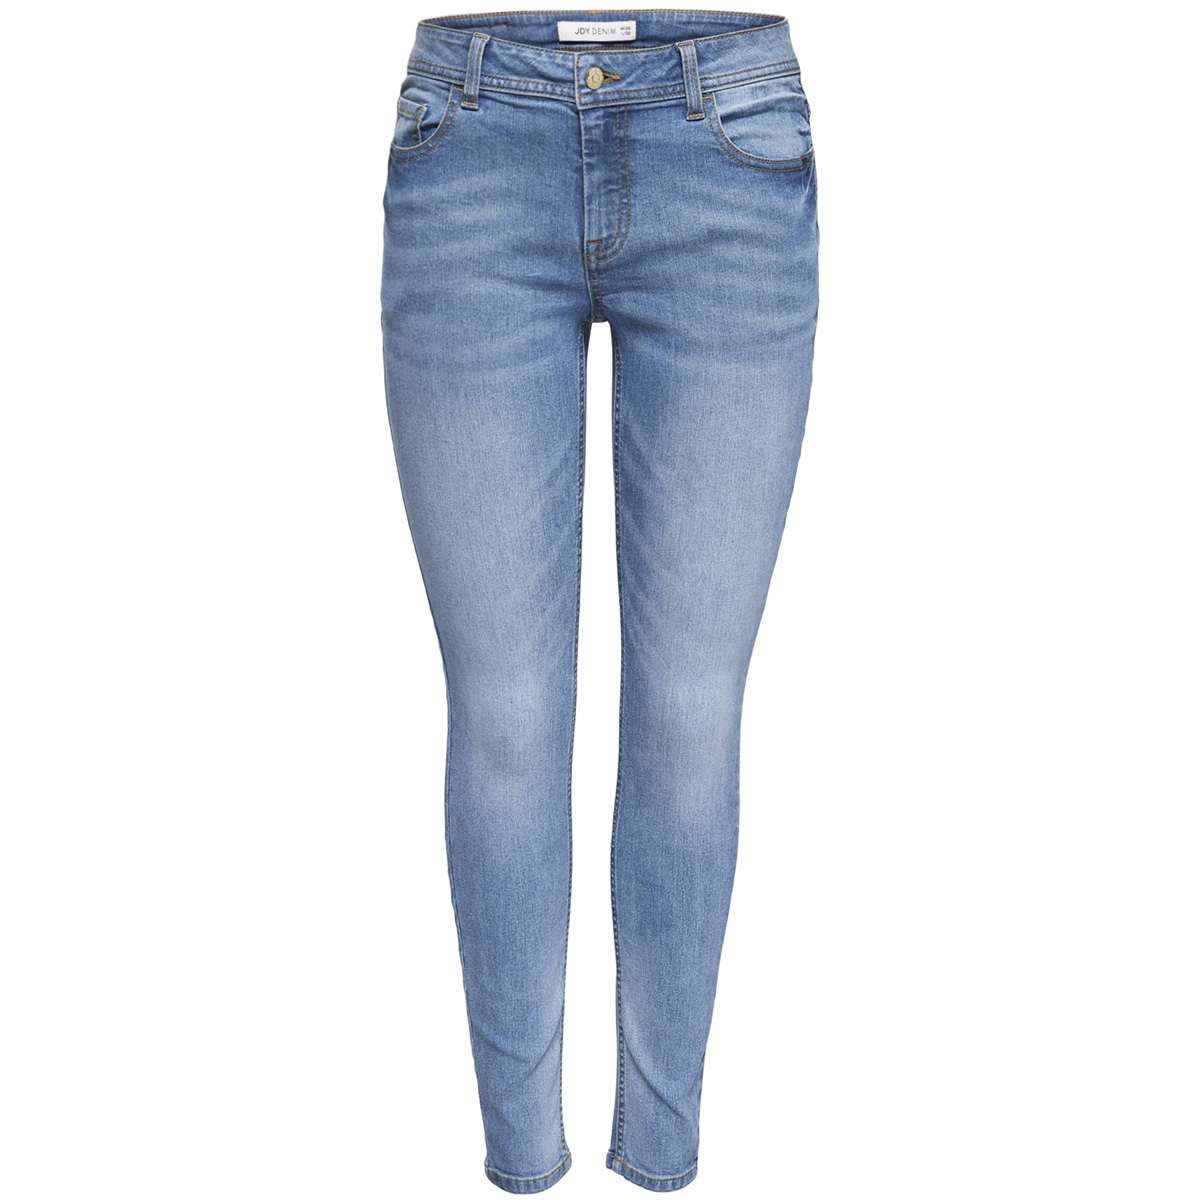 jdymagic skinny rw light blue noos 15167120 jacqueline de yong jeans light blue denim